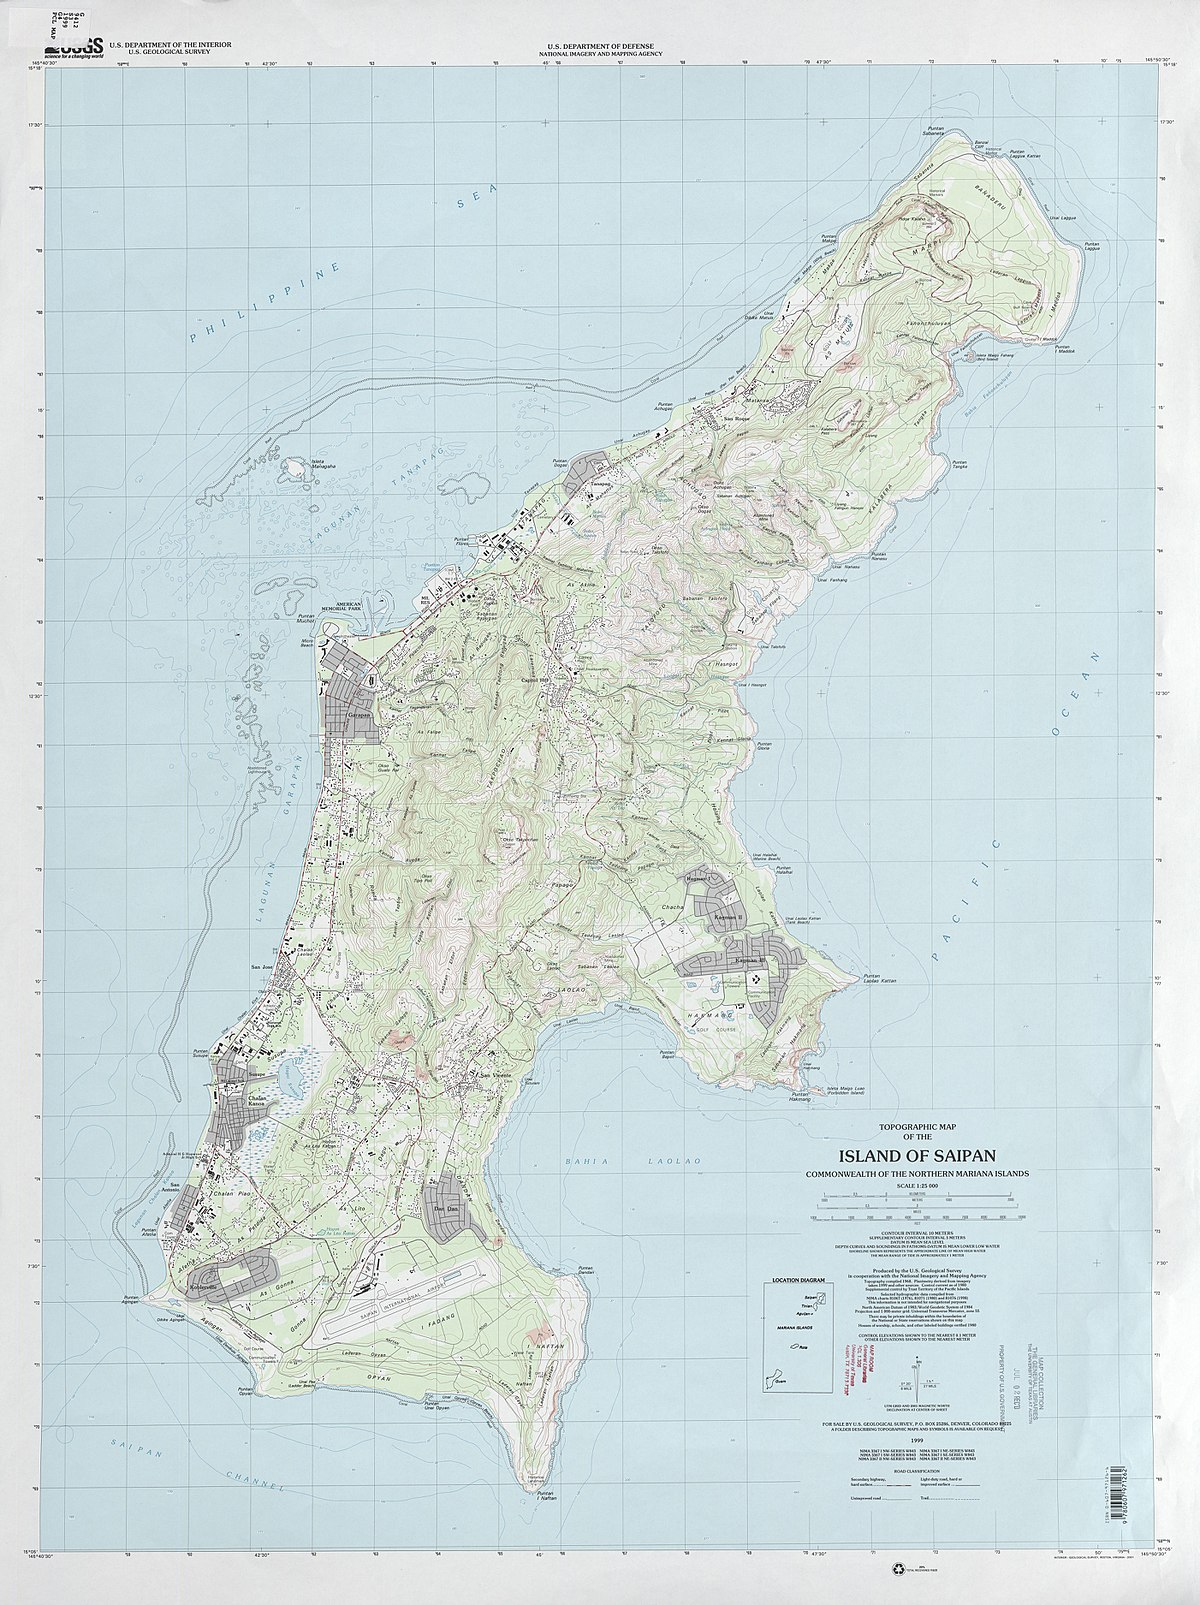 Map Of The Island Of Saipan